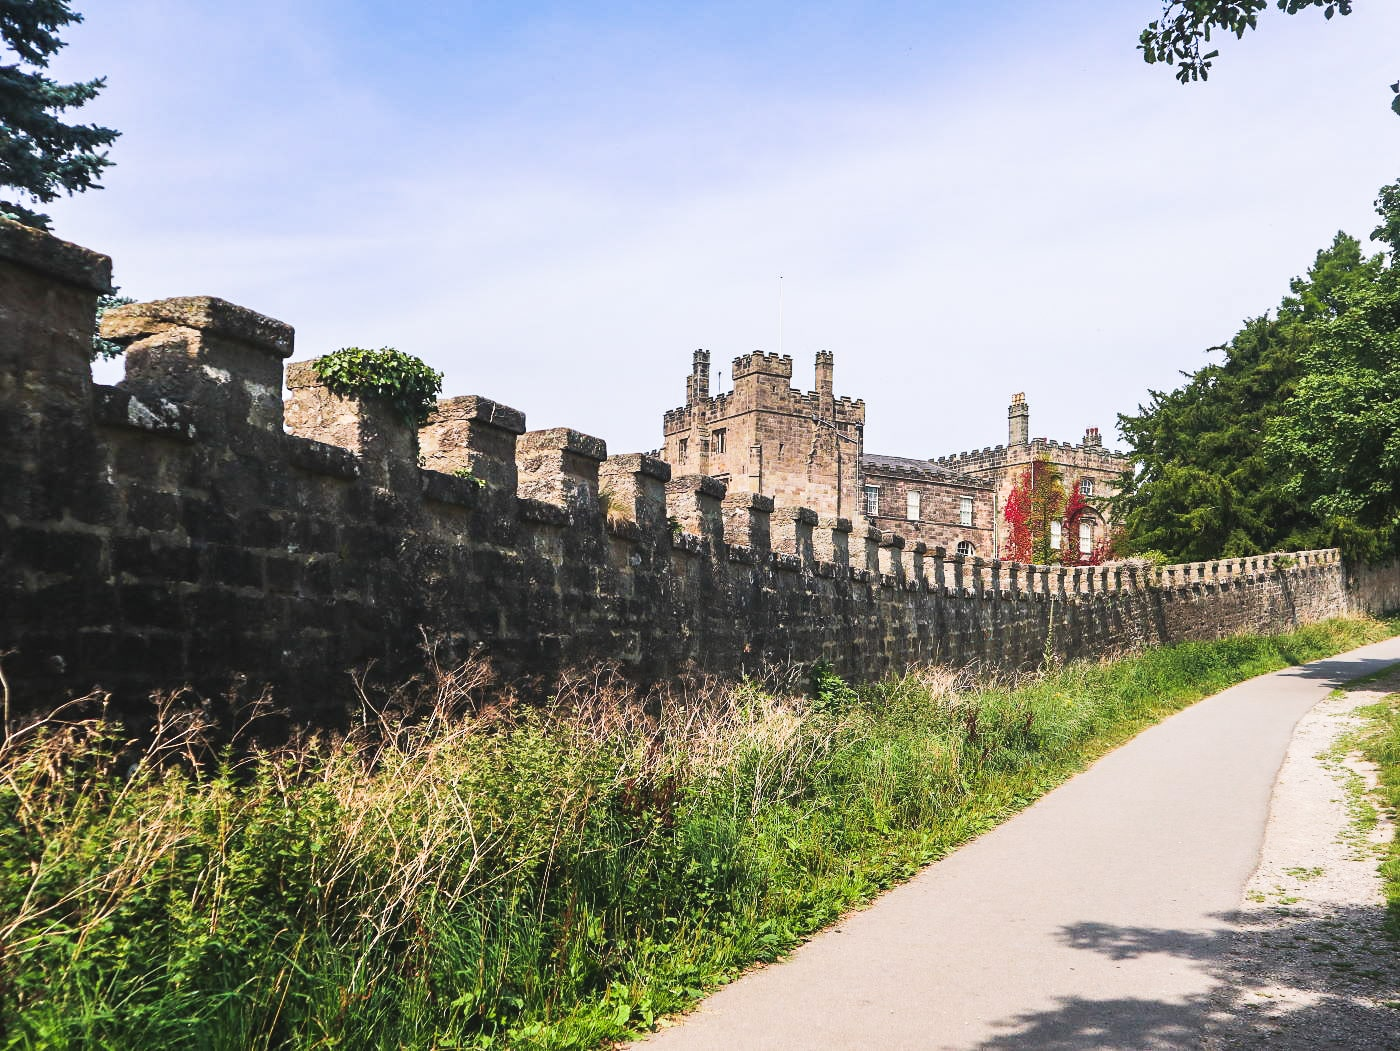 Ripley castle and castle wall from Hollybank lane